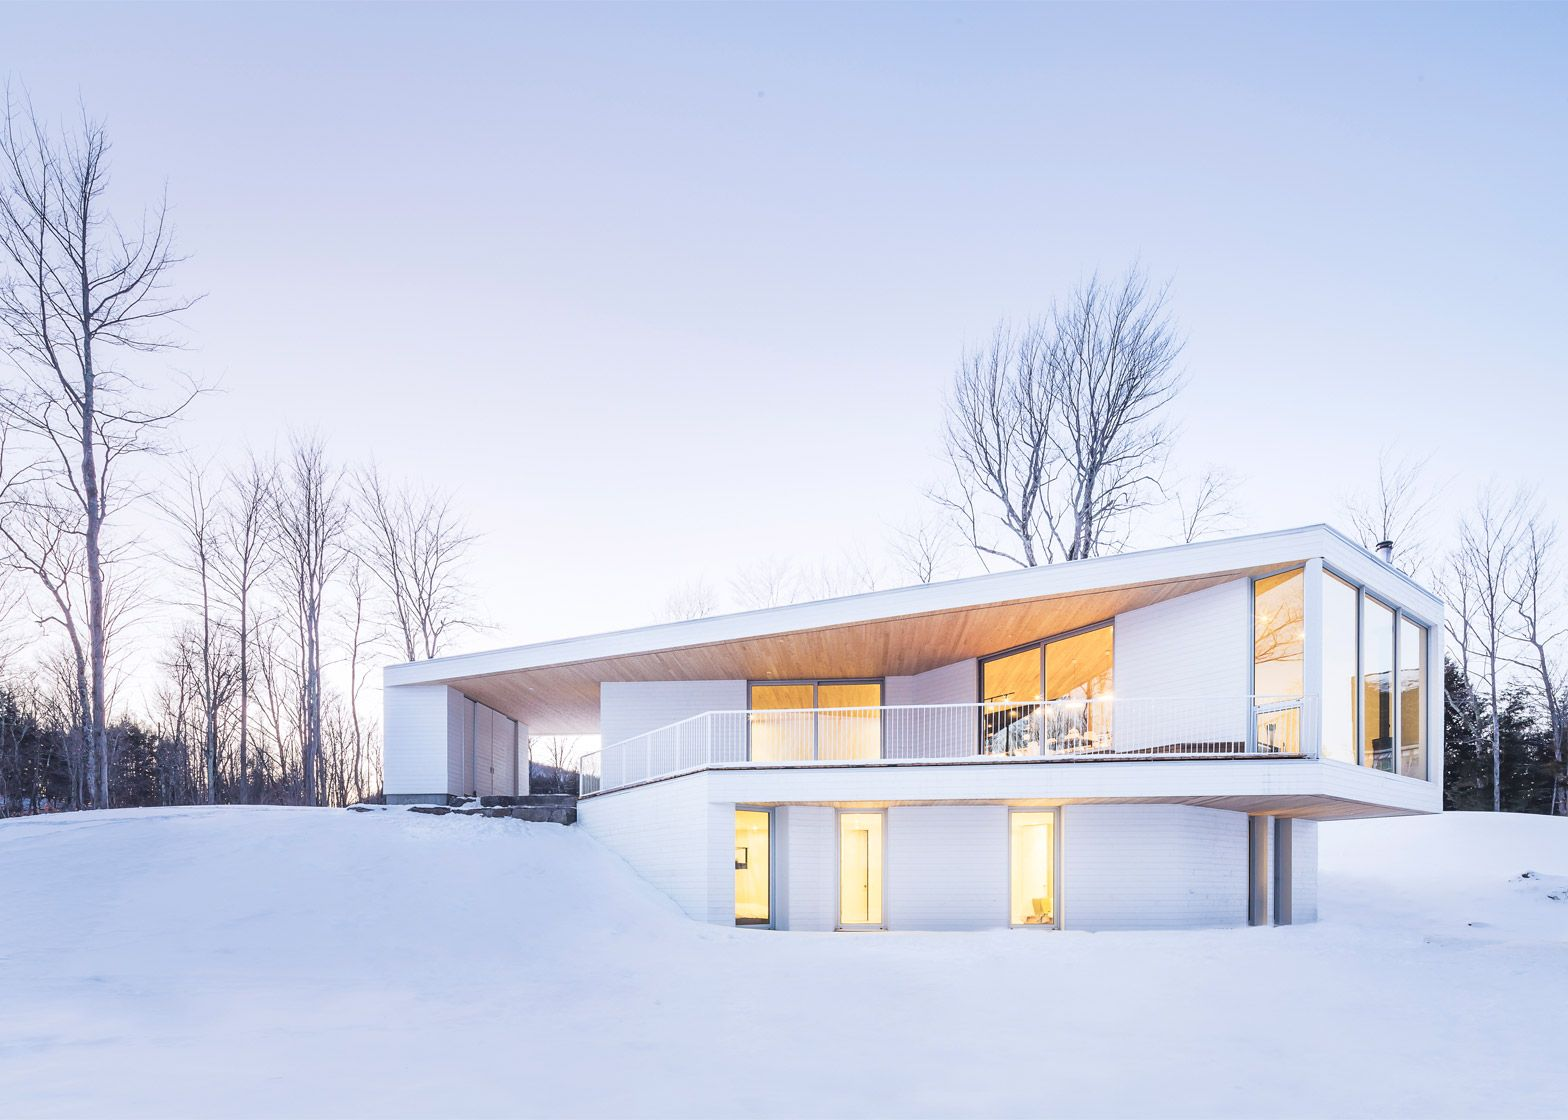 Delightful Nook Residence By MU Architecture, A White House In Quebec, Canada